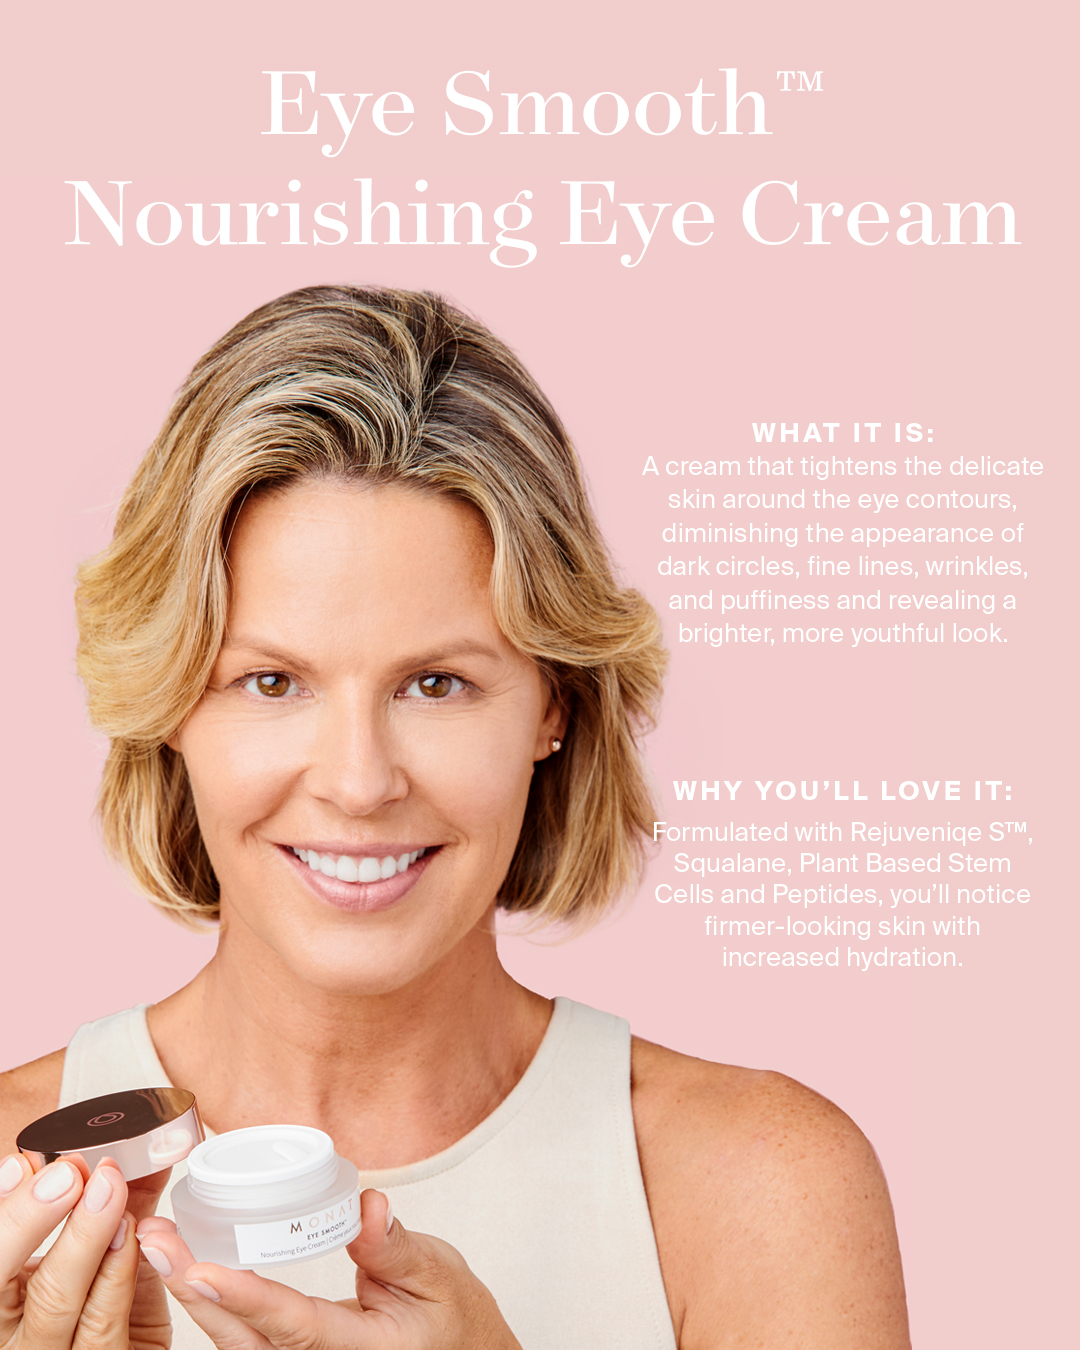 Monat On Twitter Did You Know Clinical Results Revealed That After Using Eye Smooth Nourishing Eye Cream 91 Said That Their Skin Felt Softer Smoother And Revitalized In Just 4 Hours It S